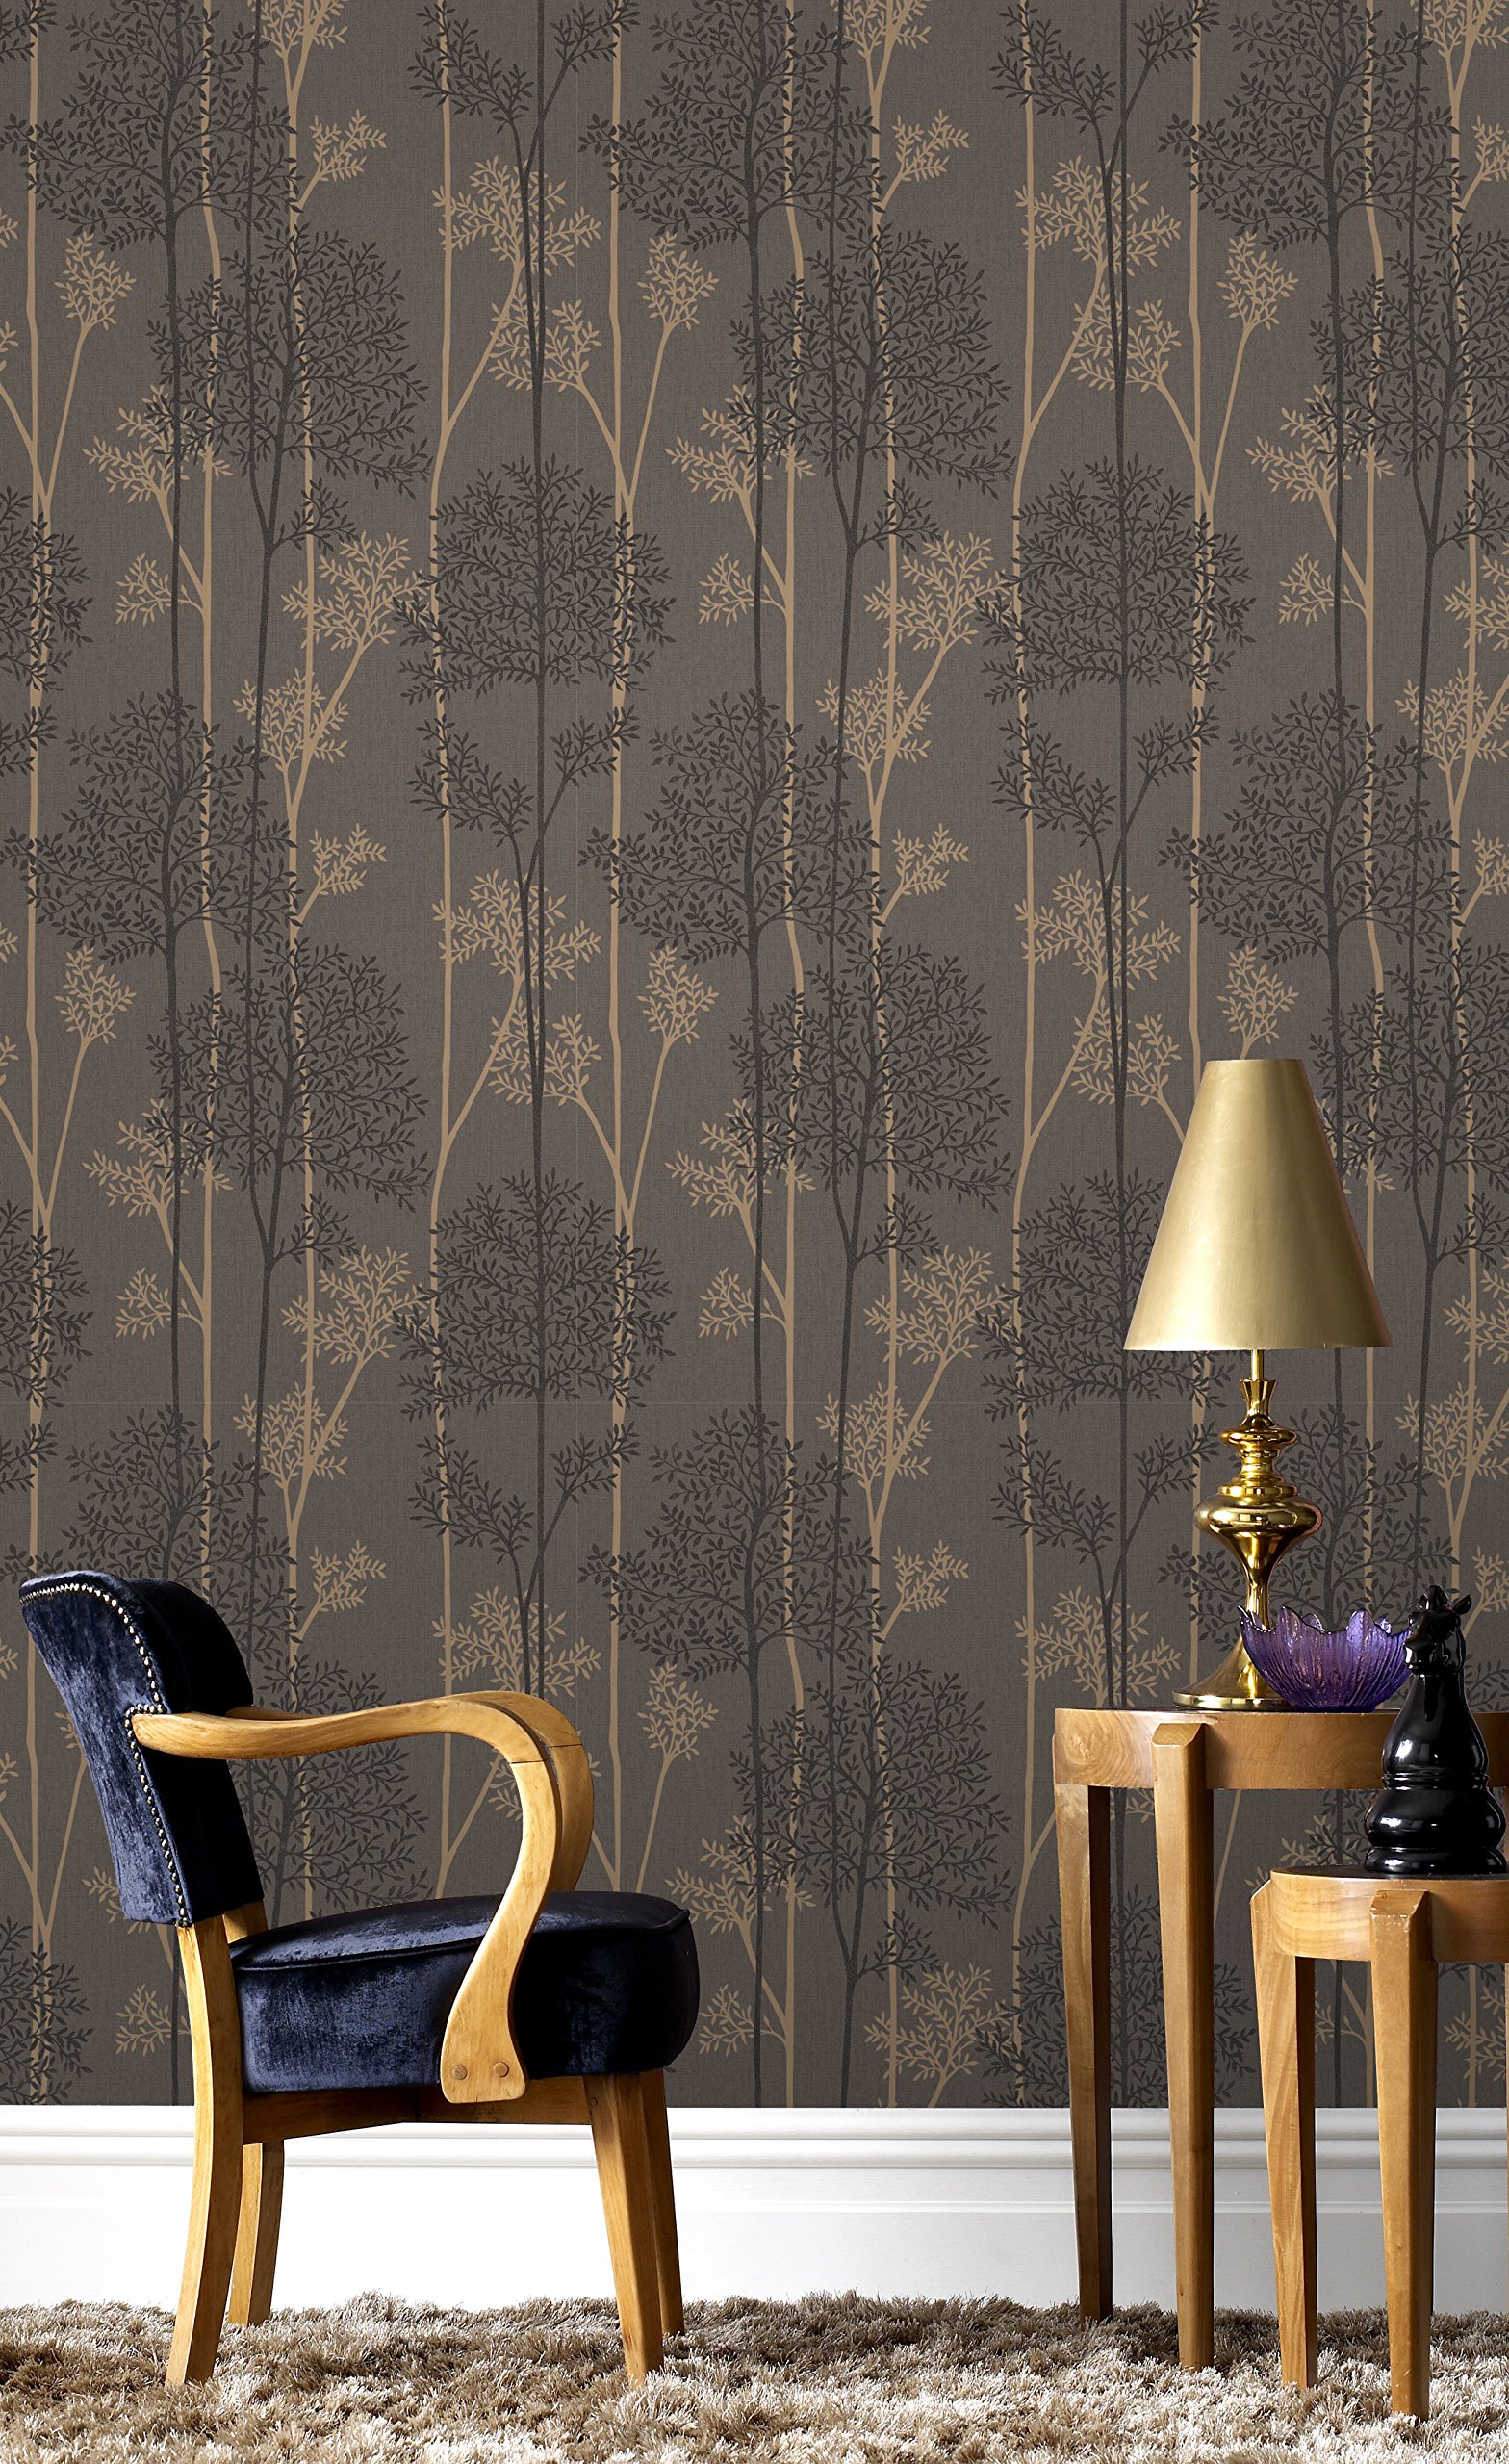 Graham & Brown 33-289 Eternal Wallpaper, Charcoal/Bronze by Graham & Brown